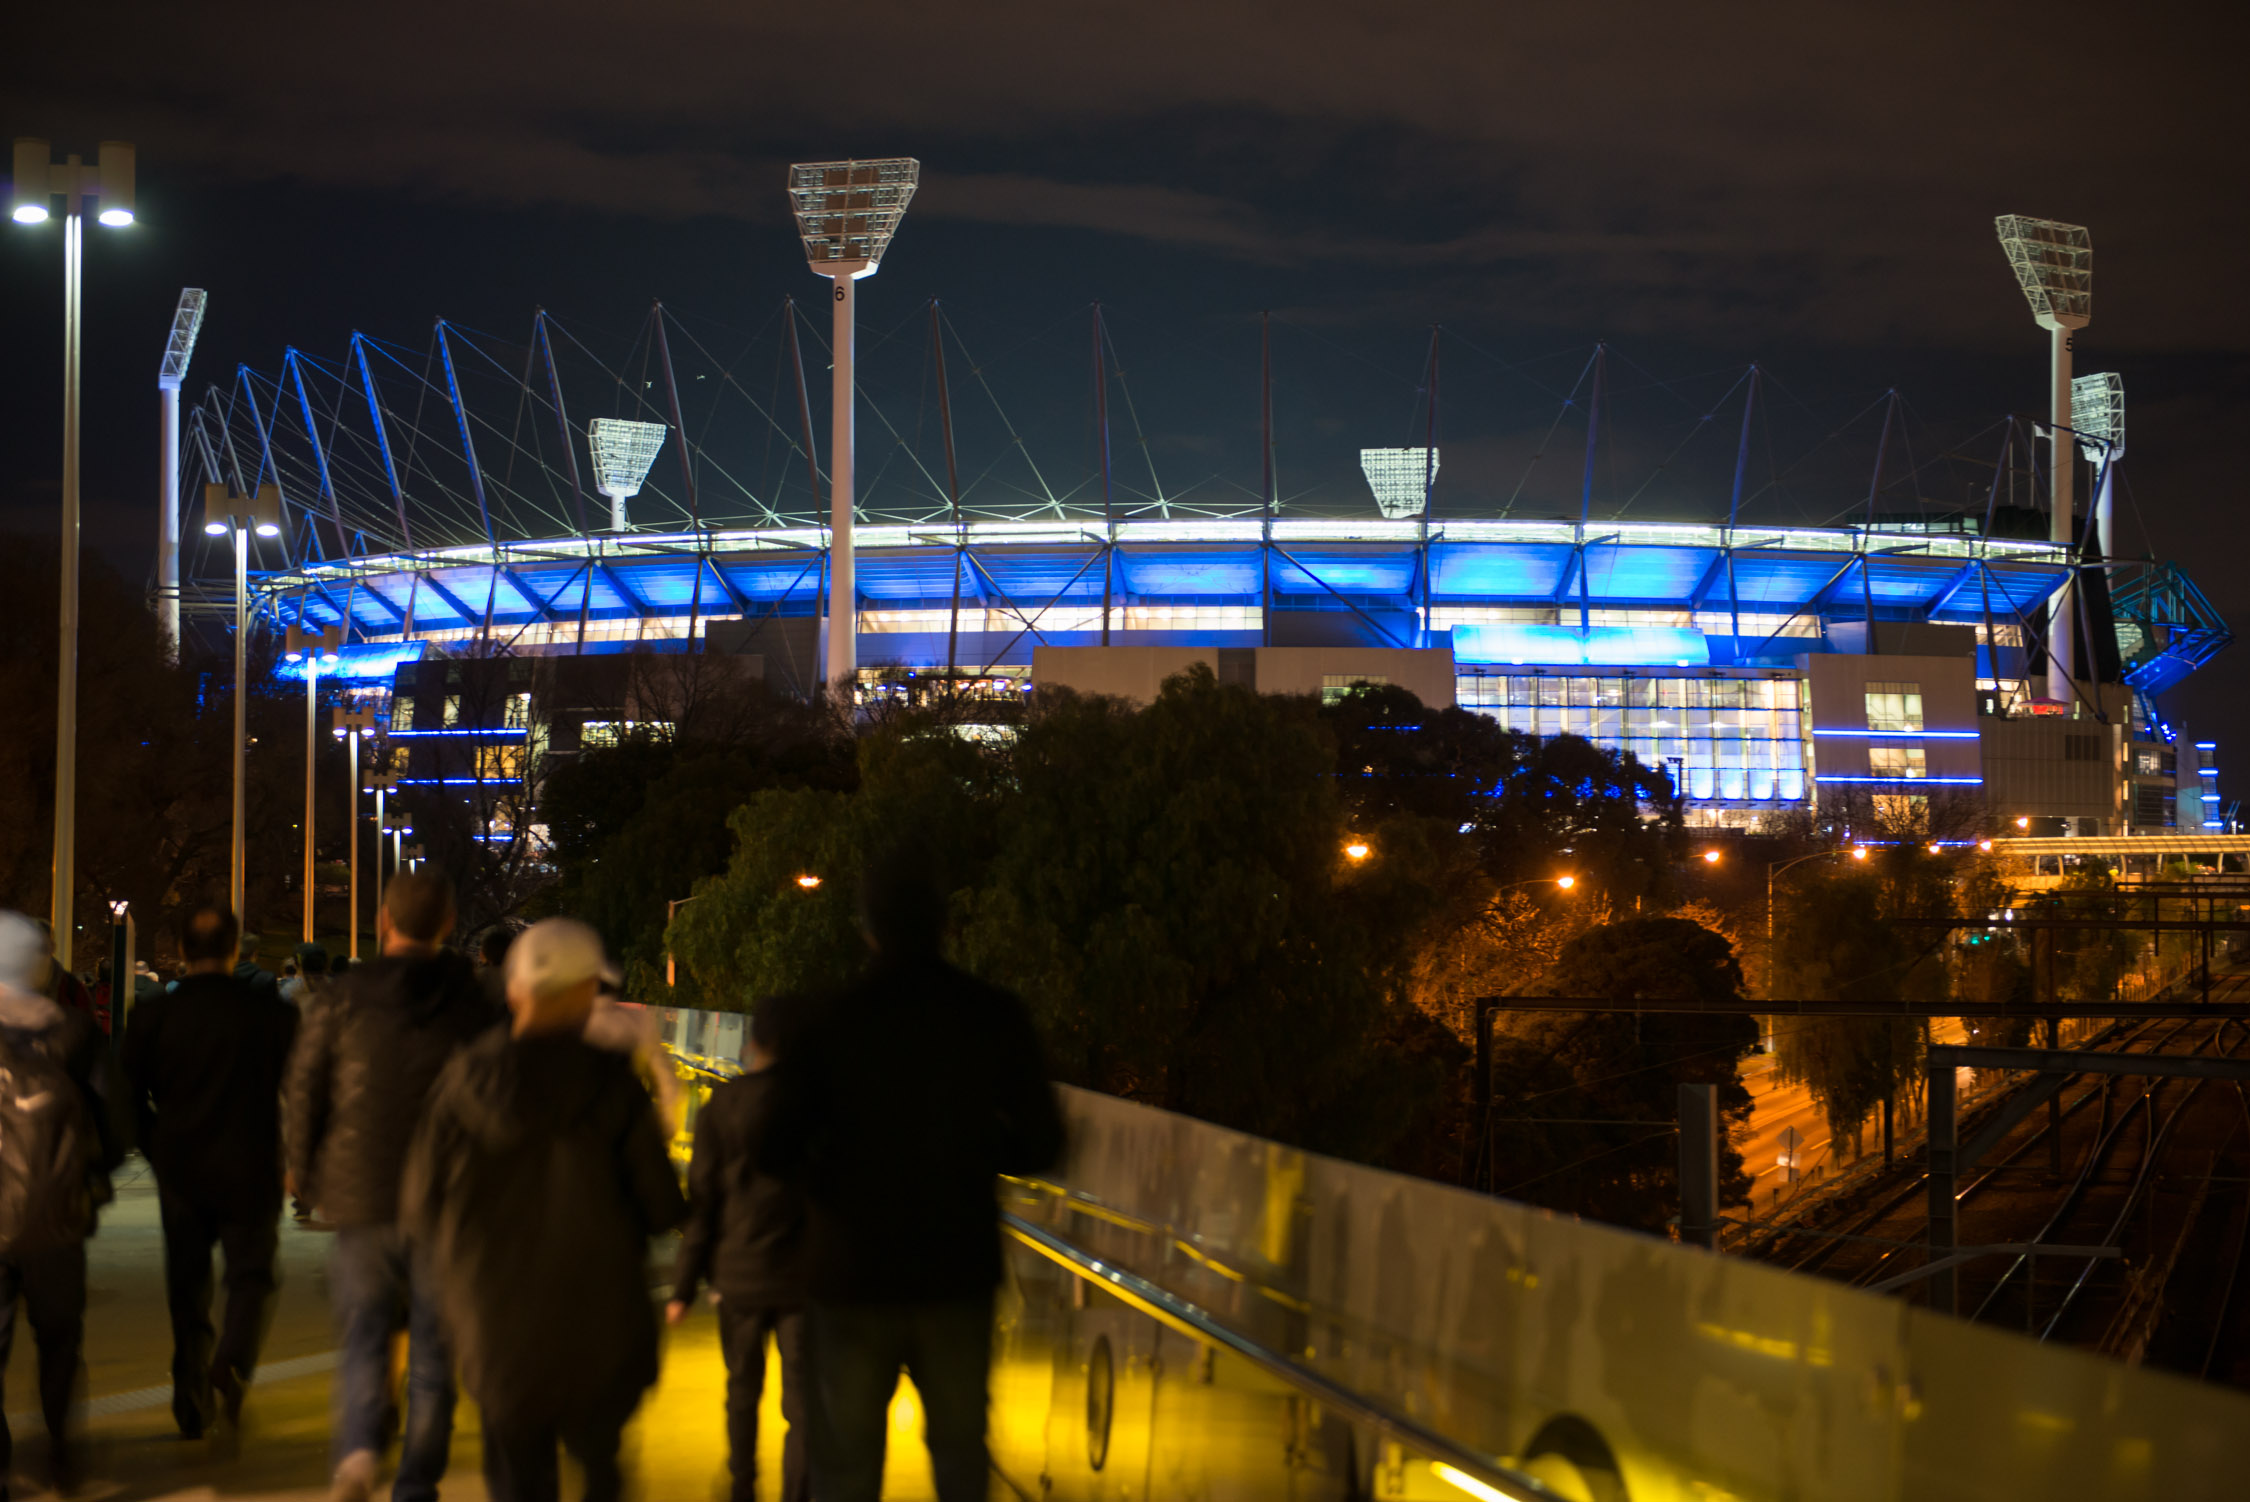 Getting to the MCG